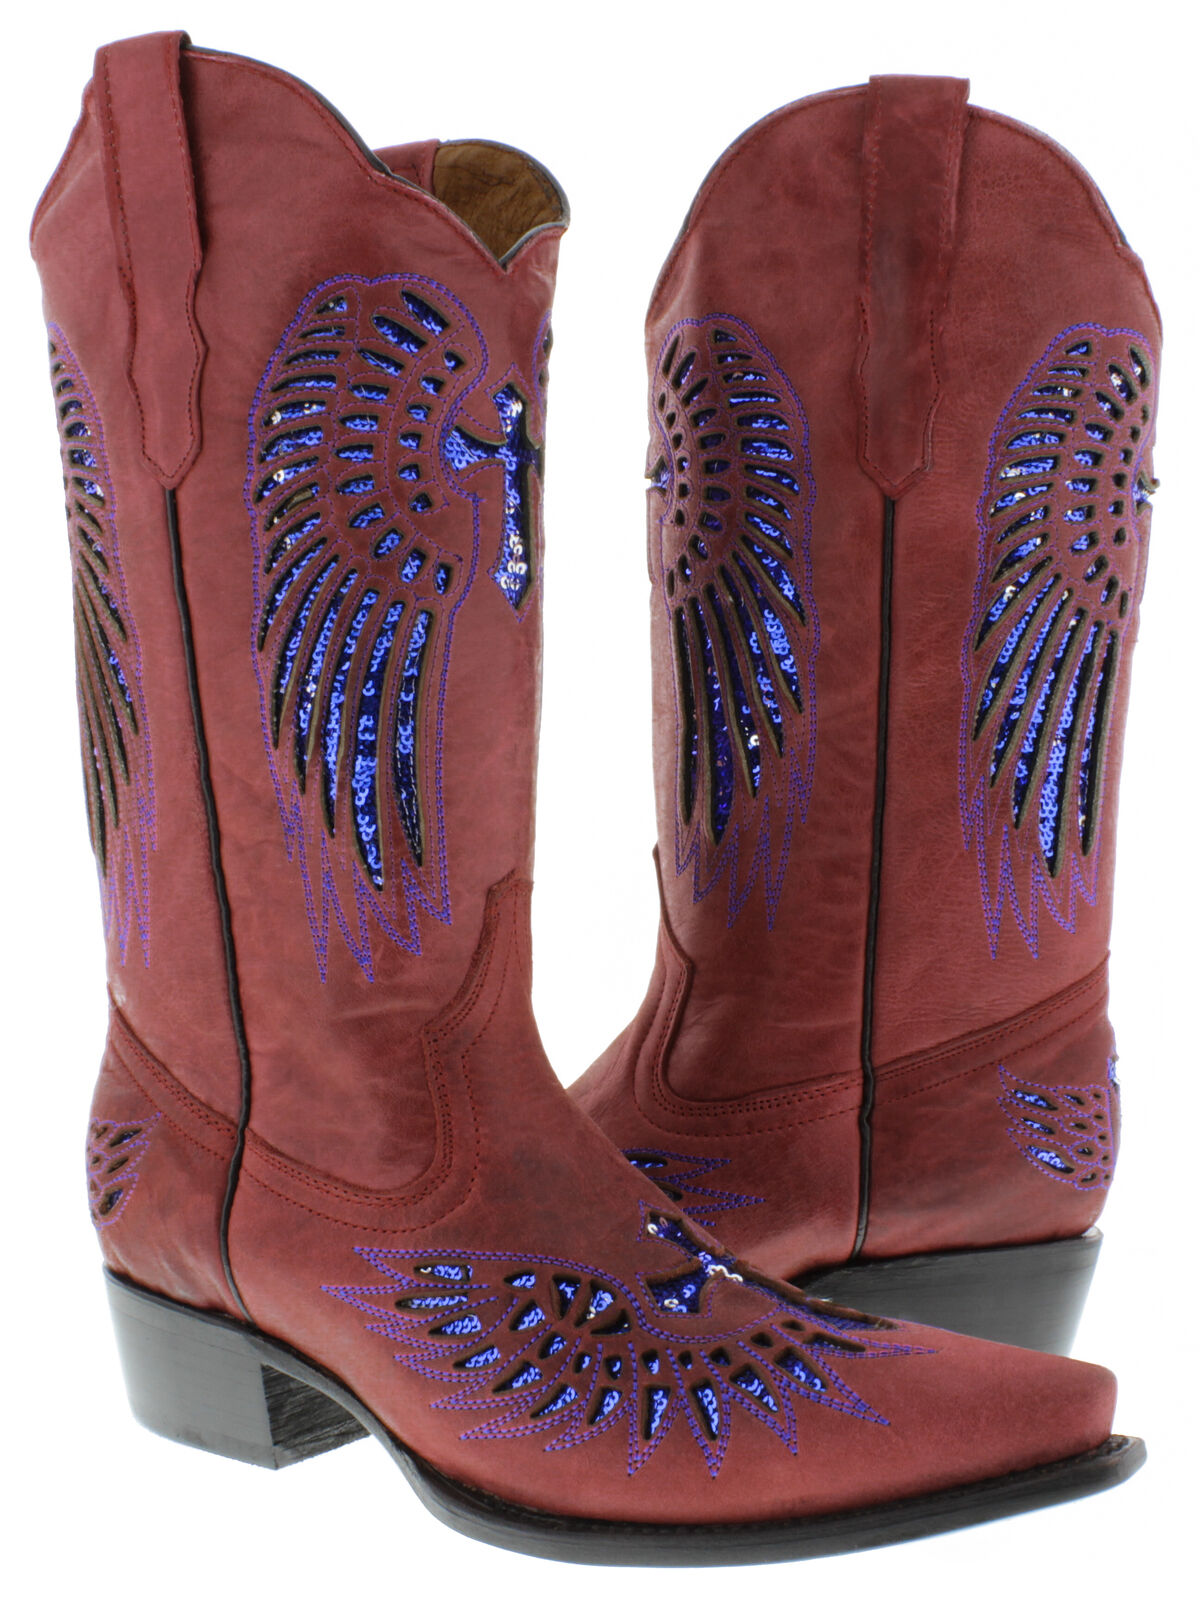 Donna Rosso Blue Cross Sequins Leather Cowgirl Boots Pointed Toe